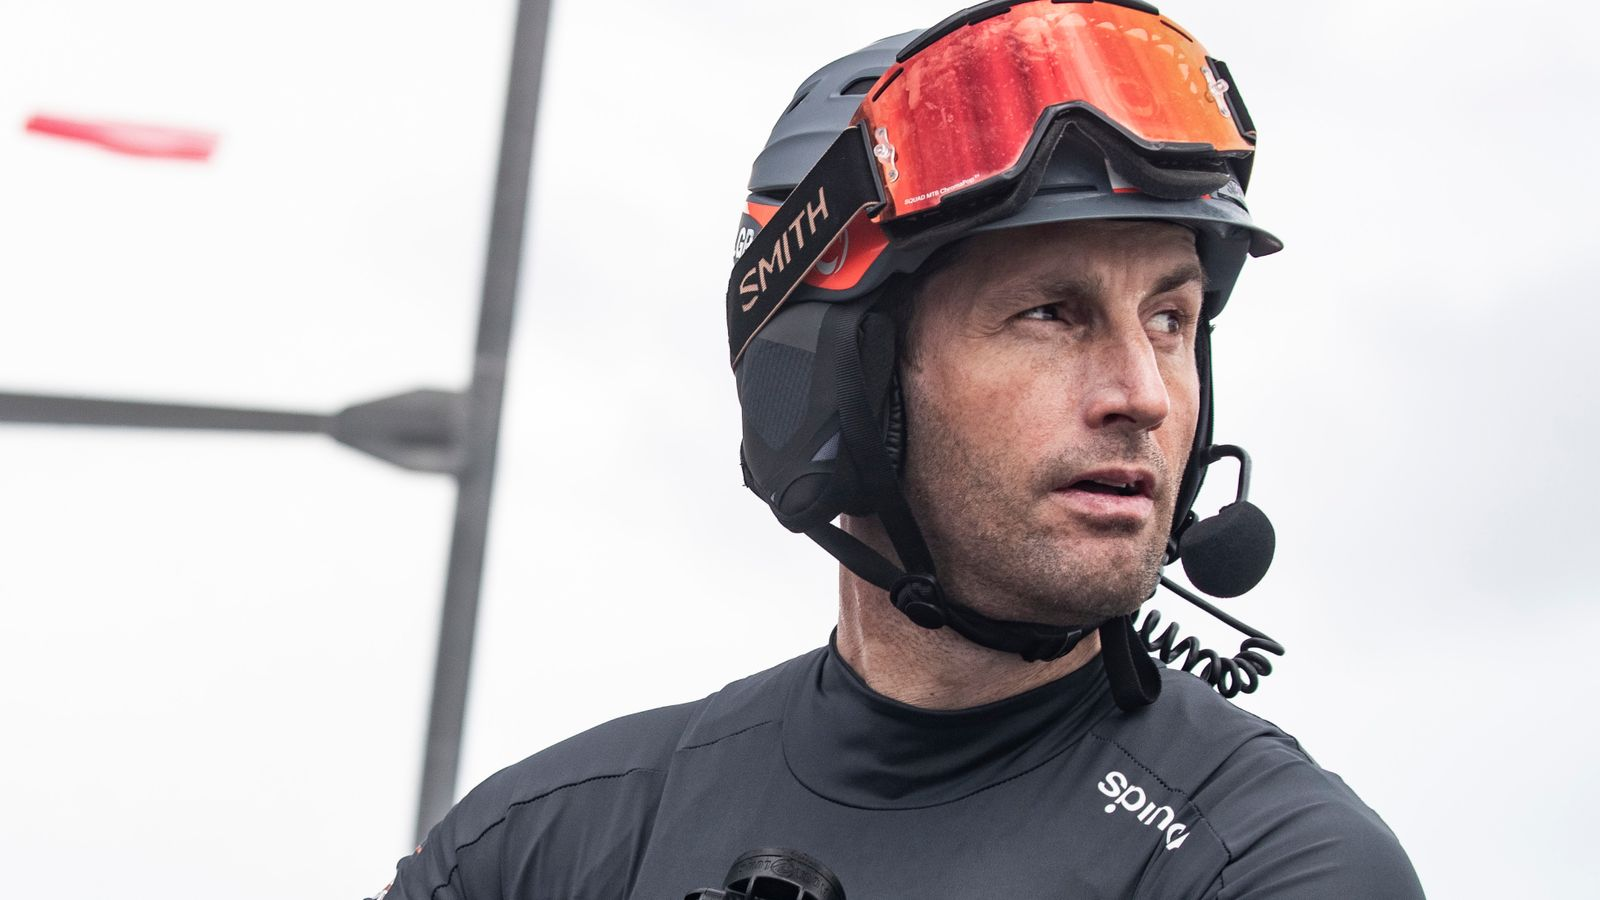 SailGP - starring Ben Ainslie - is the Formula 1 of the water and it's coming to Sky Sports